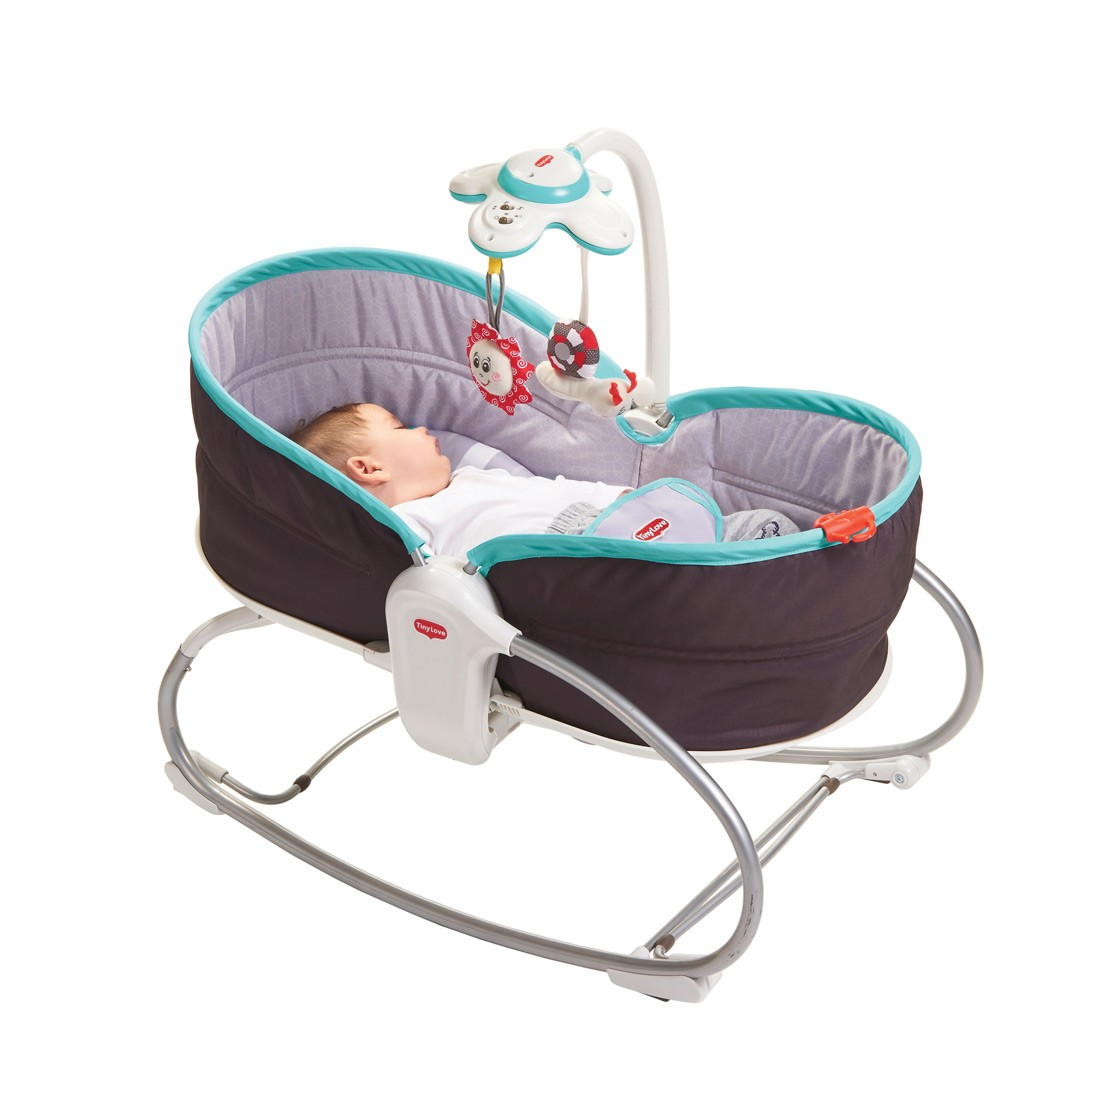 Baby Egg Chair Tiny Love 3 In 1 Rocking Vibrating Bouncy Chair Moses Basket